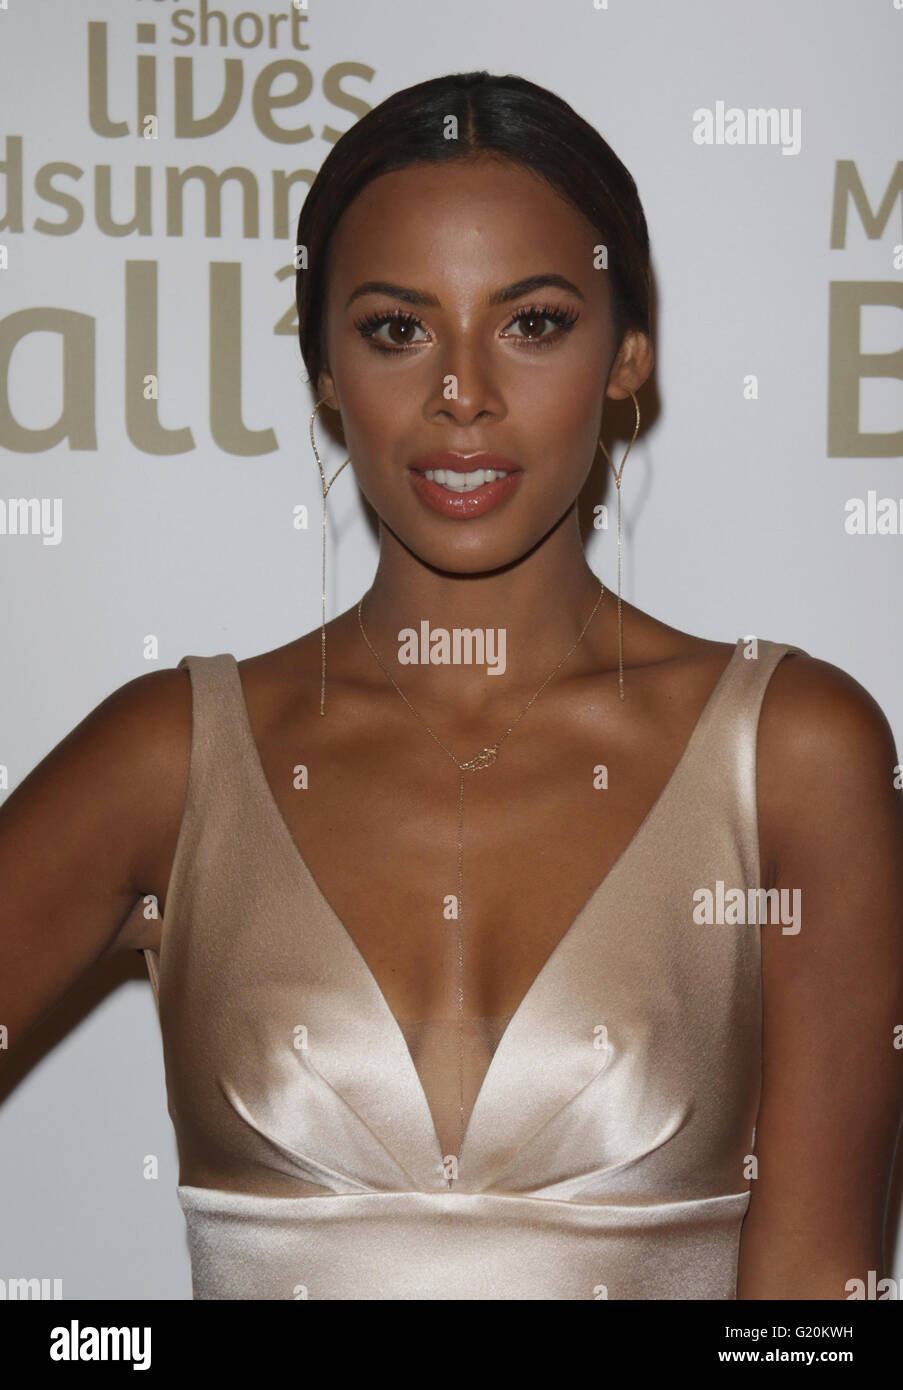 Rochelle Humes attends the Together for Short Lives Midsummer Ball at Banqueting House in London - Stock Image